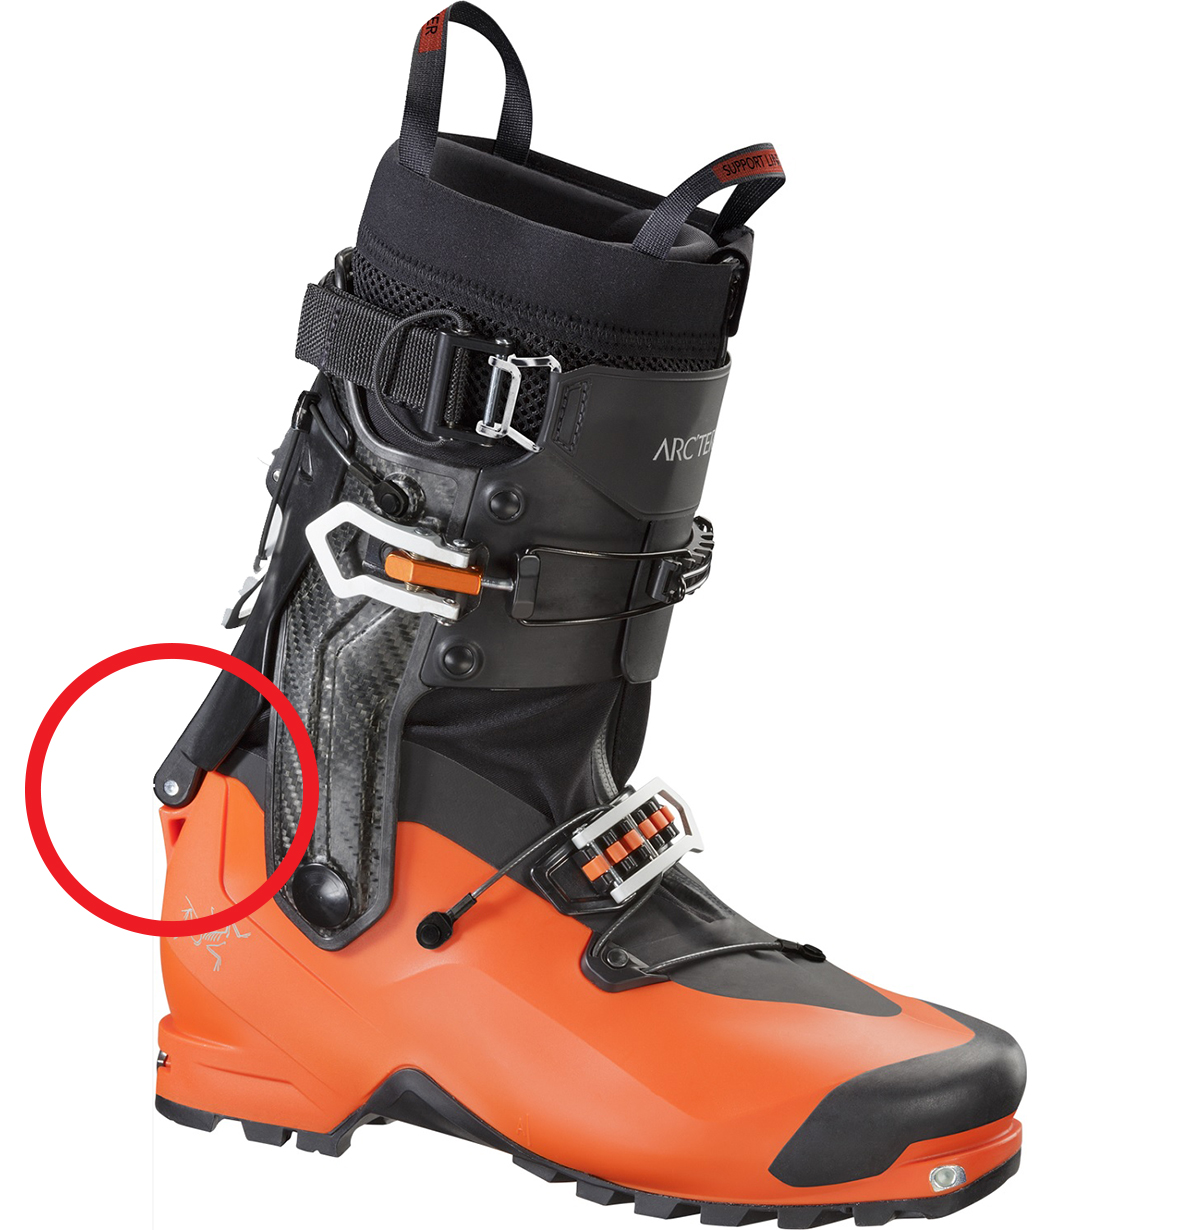 Blister Gear Review covers the Arc'teryx Procline ski boot recall